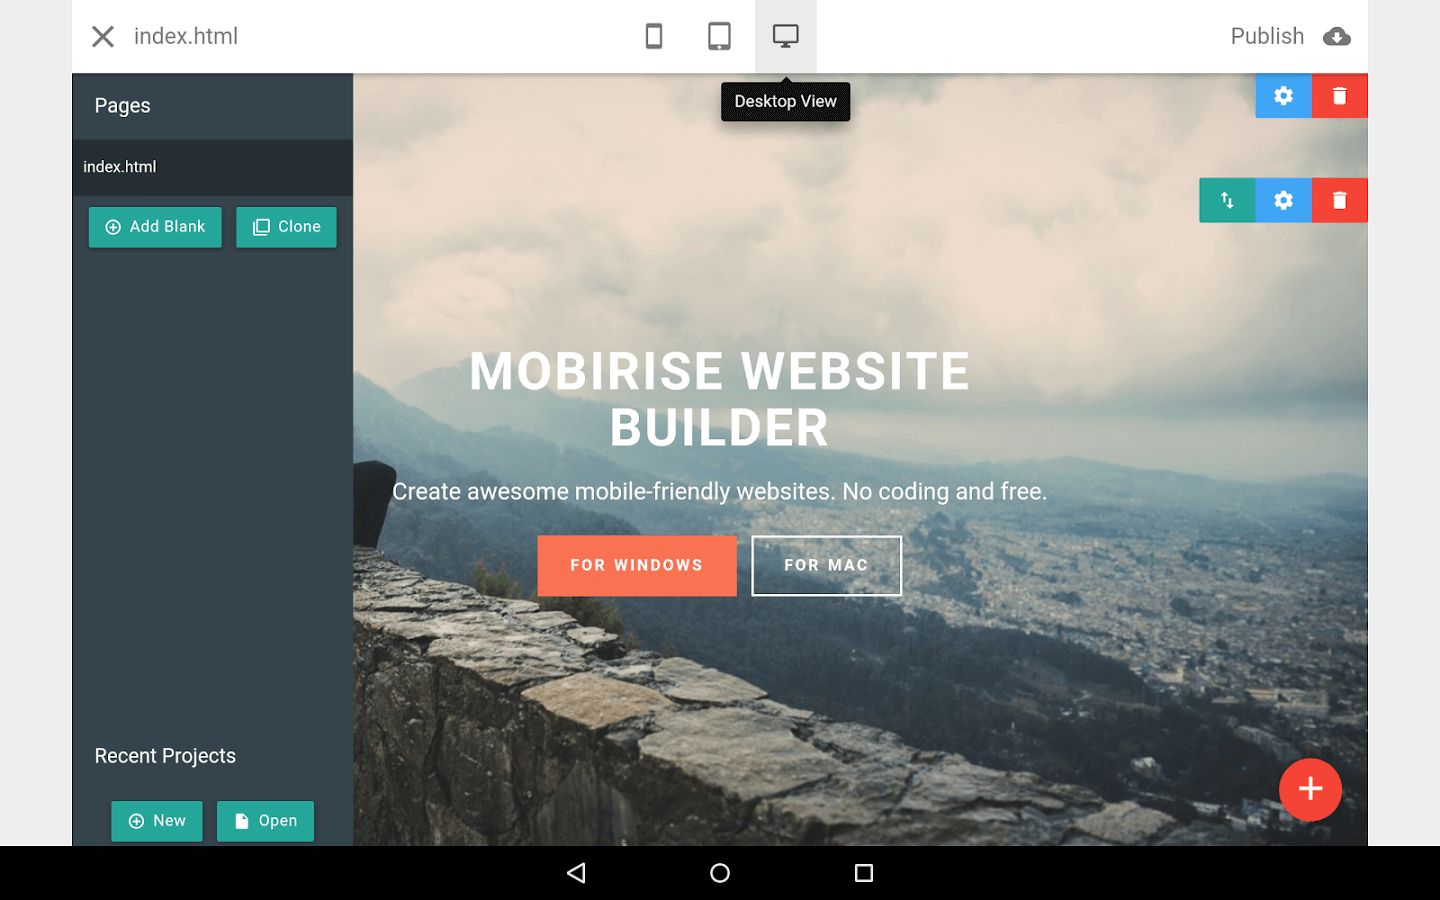 mobirise-website-builder